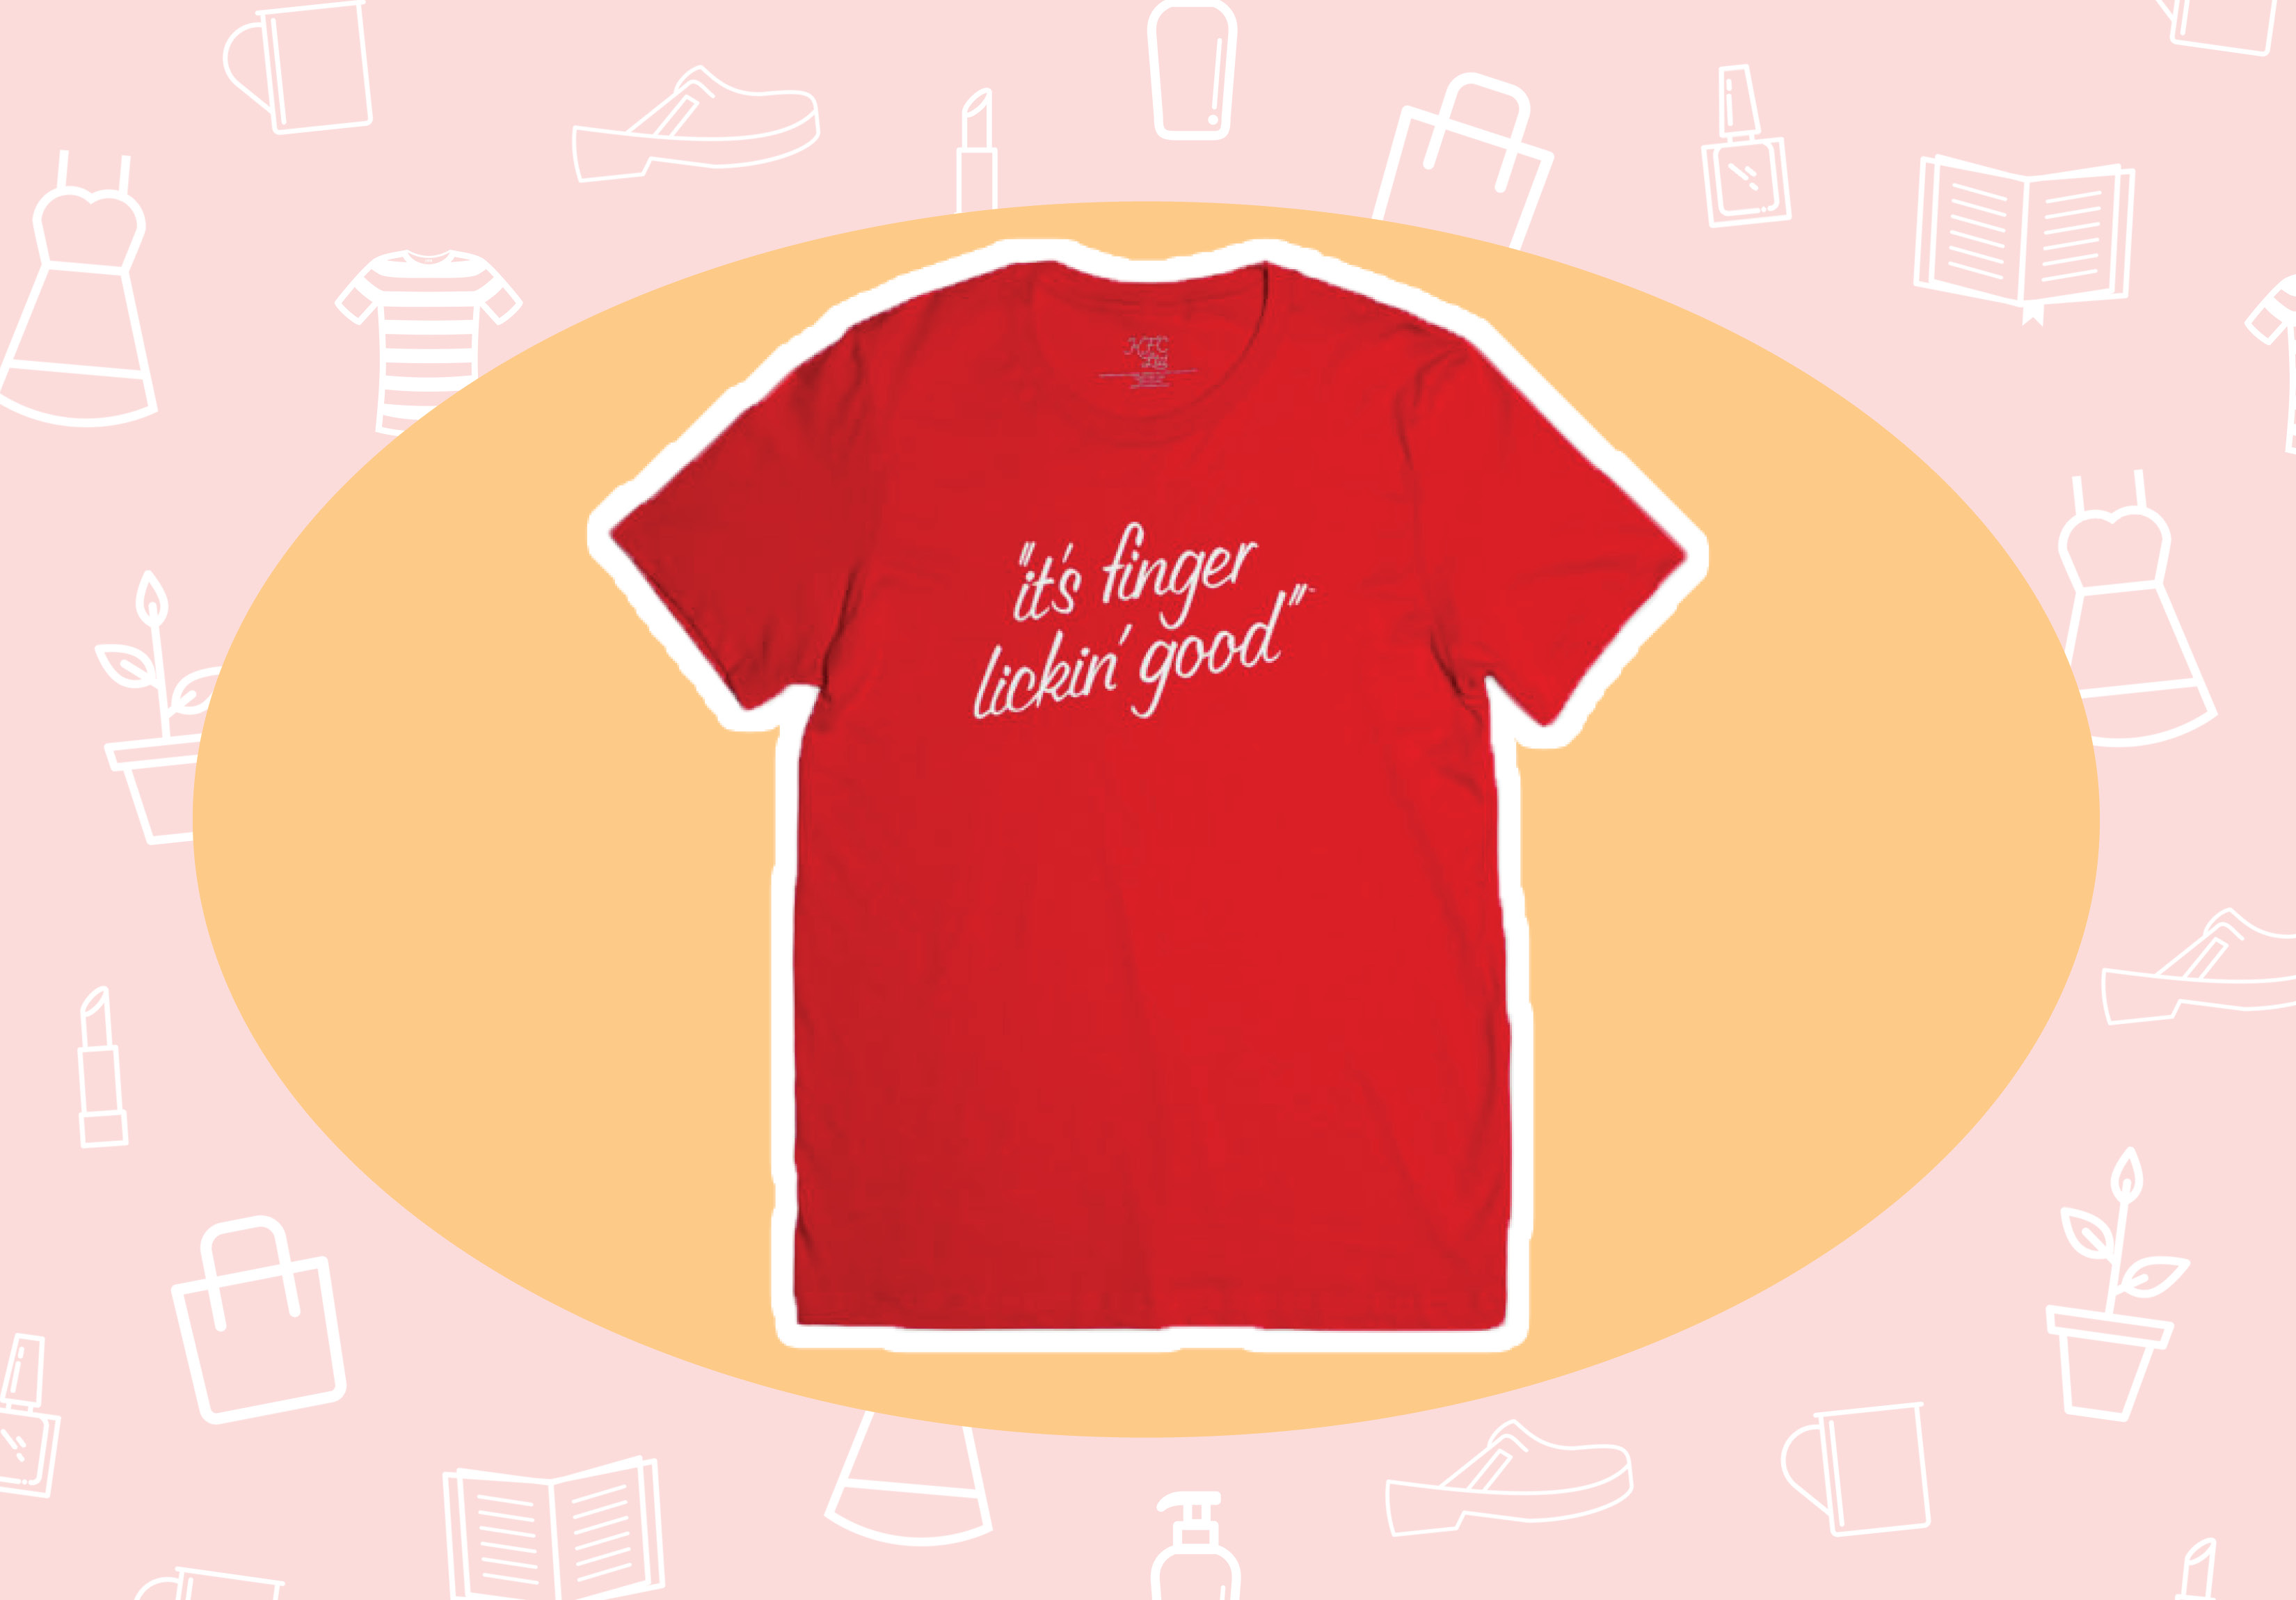 WANT/NEED: A finger lickin' good T-shirt, and more stuff you want to buy